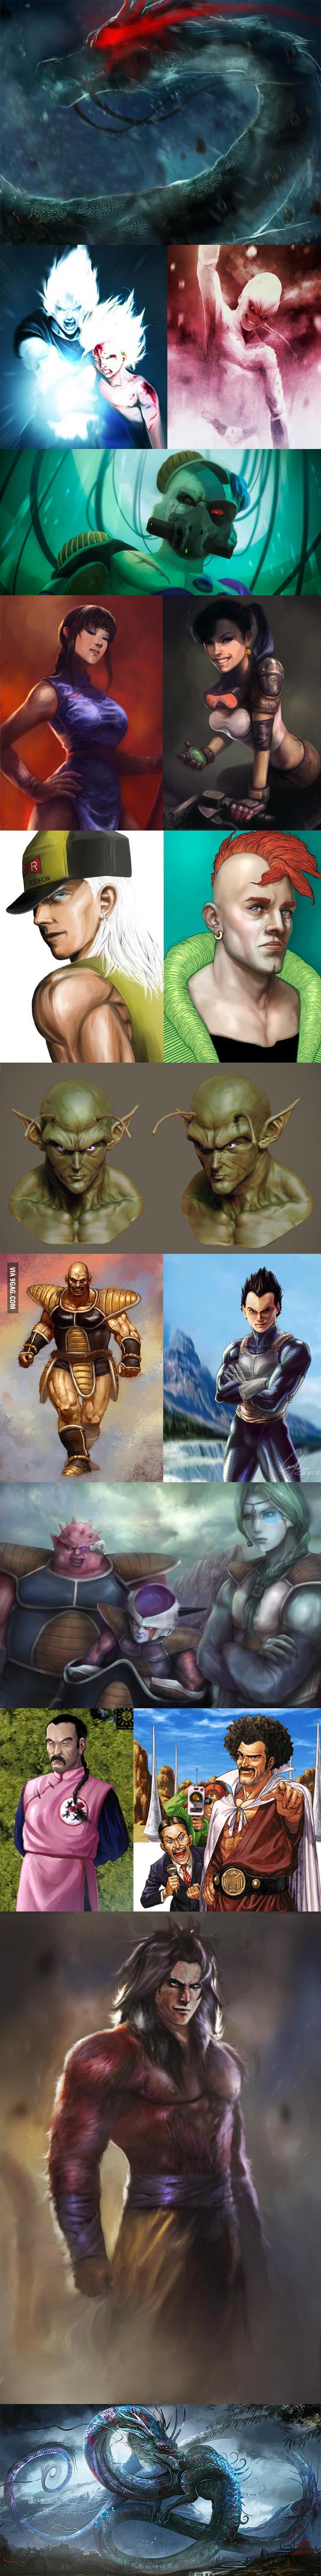 Dragon Ball Z: Realistic art compilation